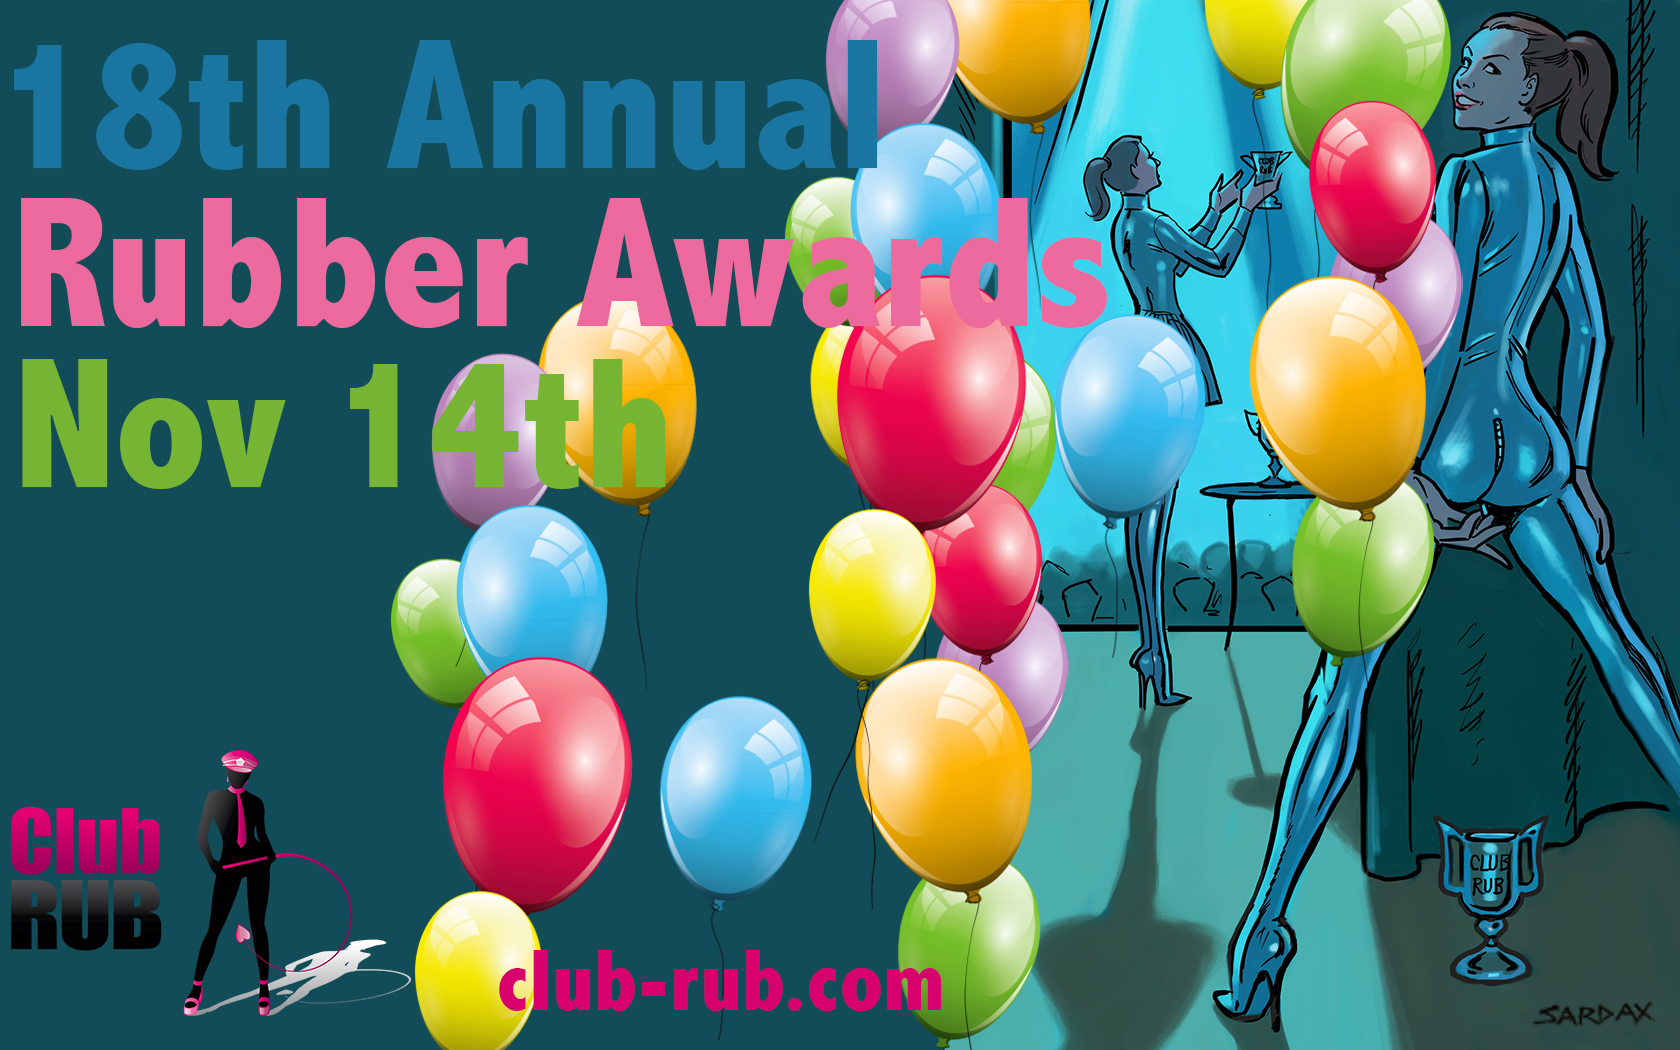 Club Rub Newsletter